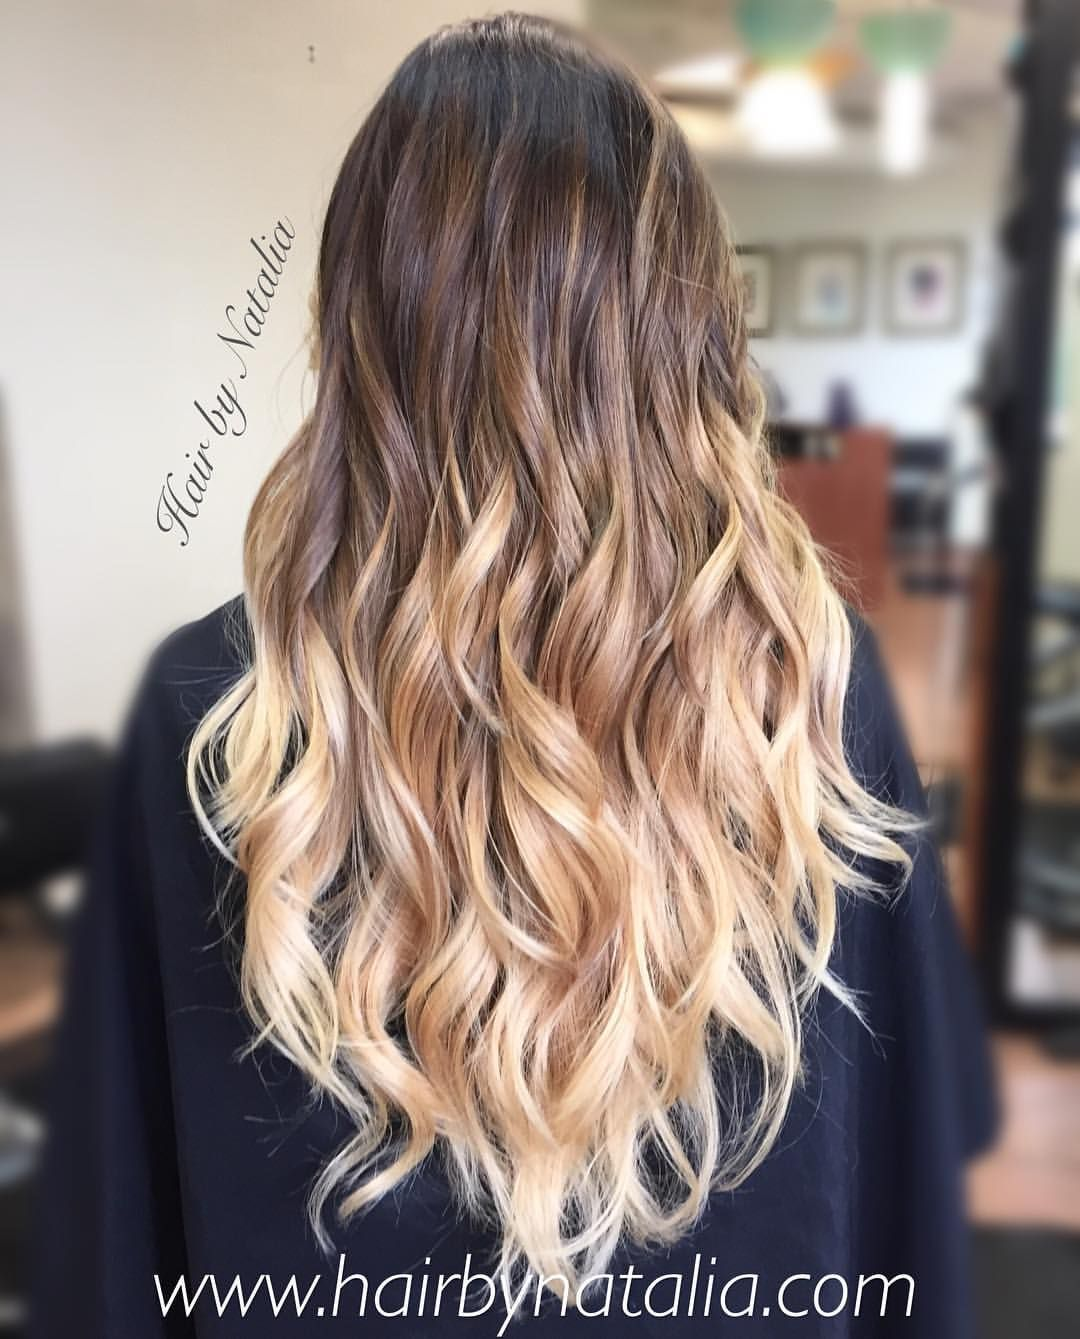 Balayage Ombre Color Melt Balayage In Denver Balayage Ombre